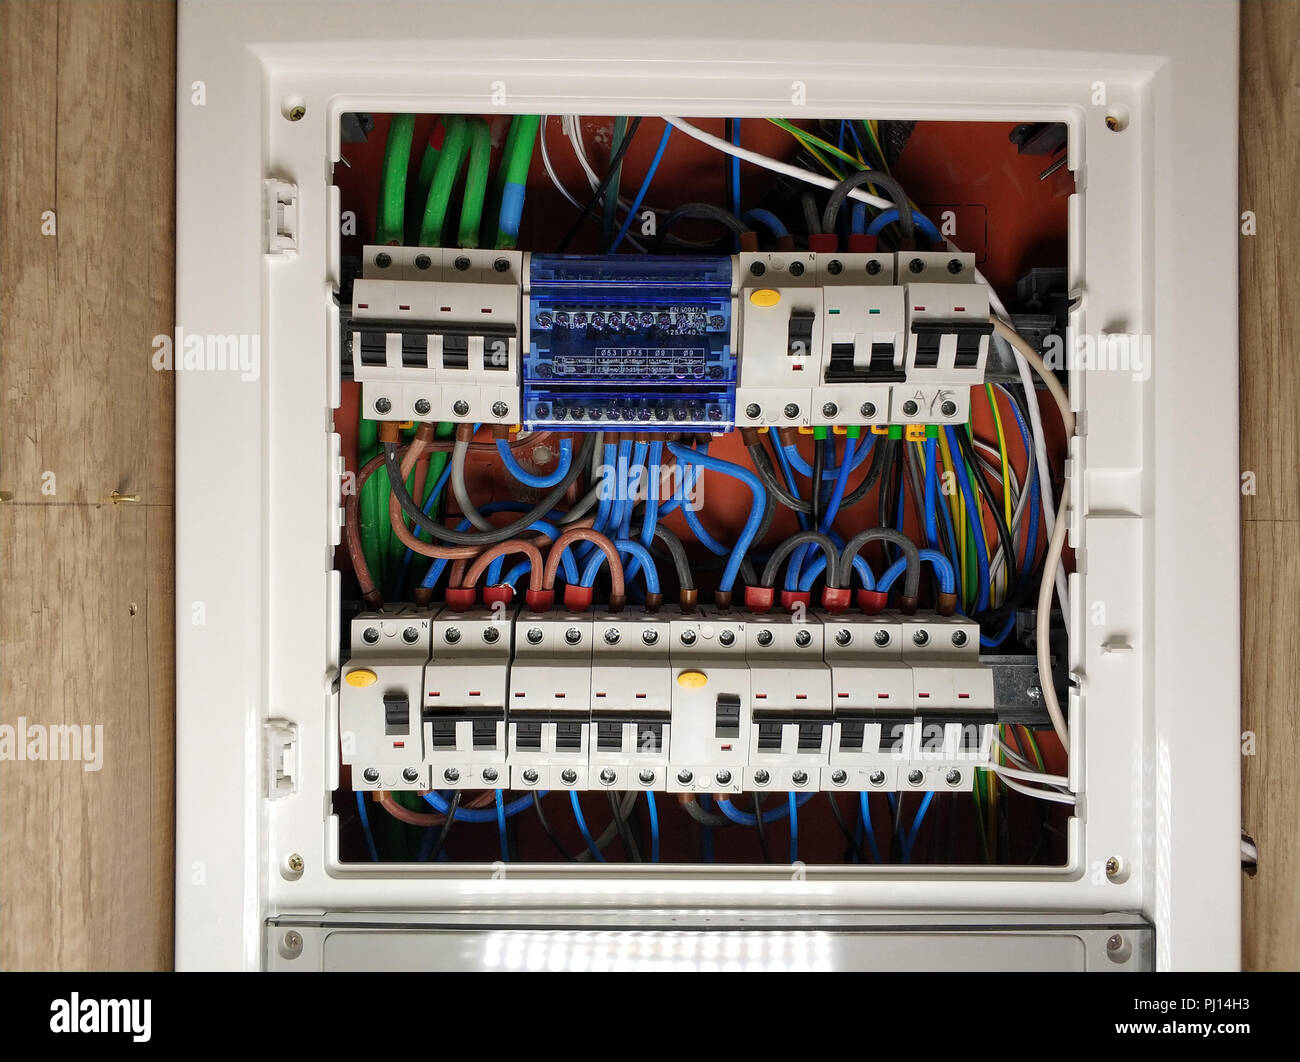 Electrical Panel Circuit Breakers Stock Photos Wiring Circuitbreaker Electricalpanel Close Up Of White Frame Switch Board With Colourful Cables Automatic Switchers